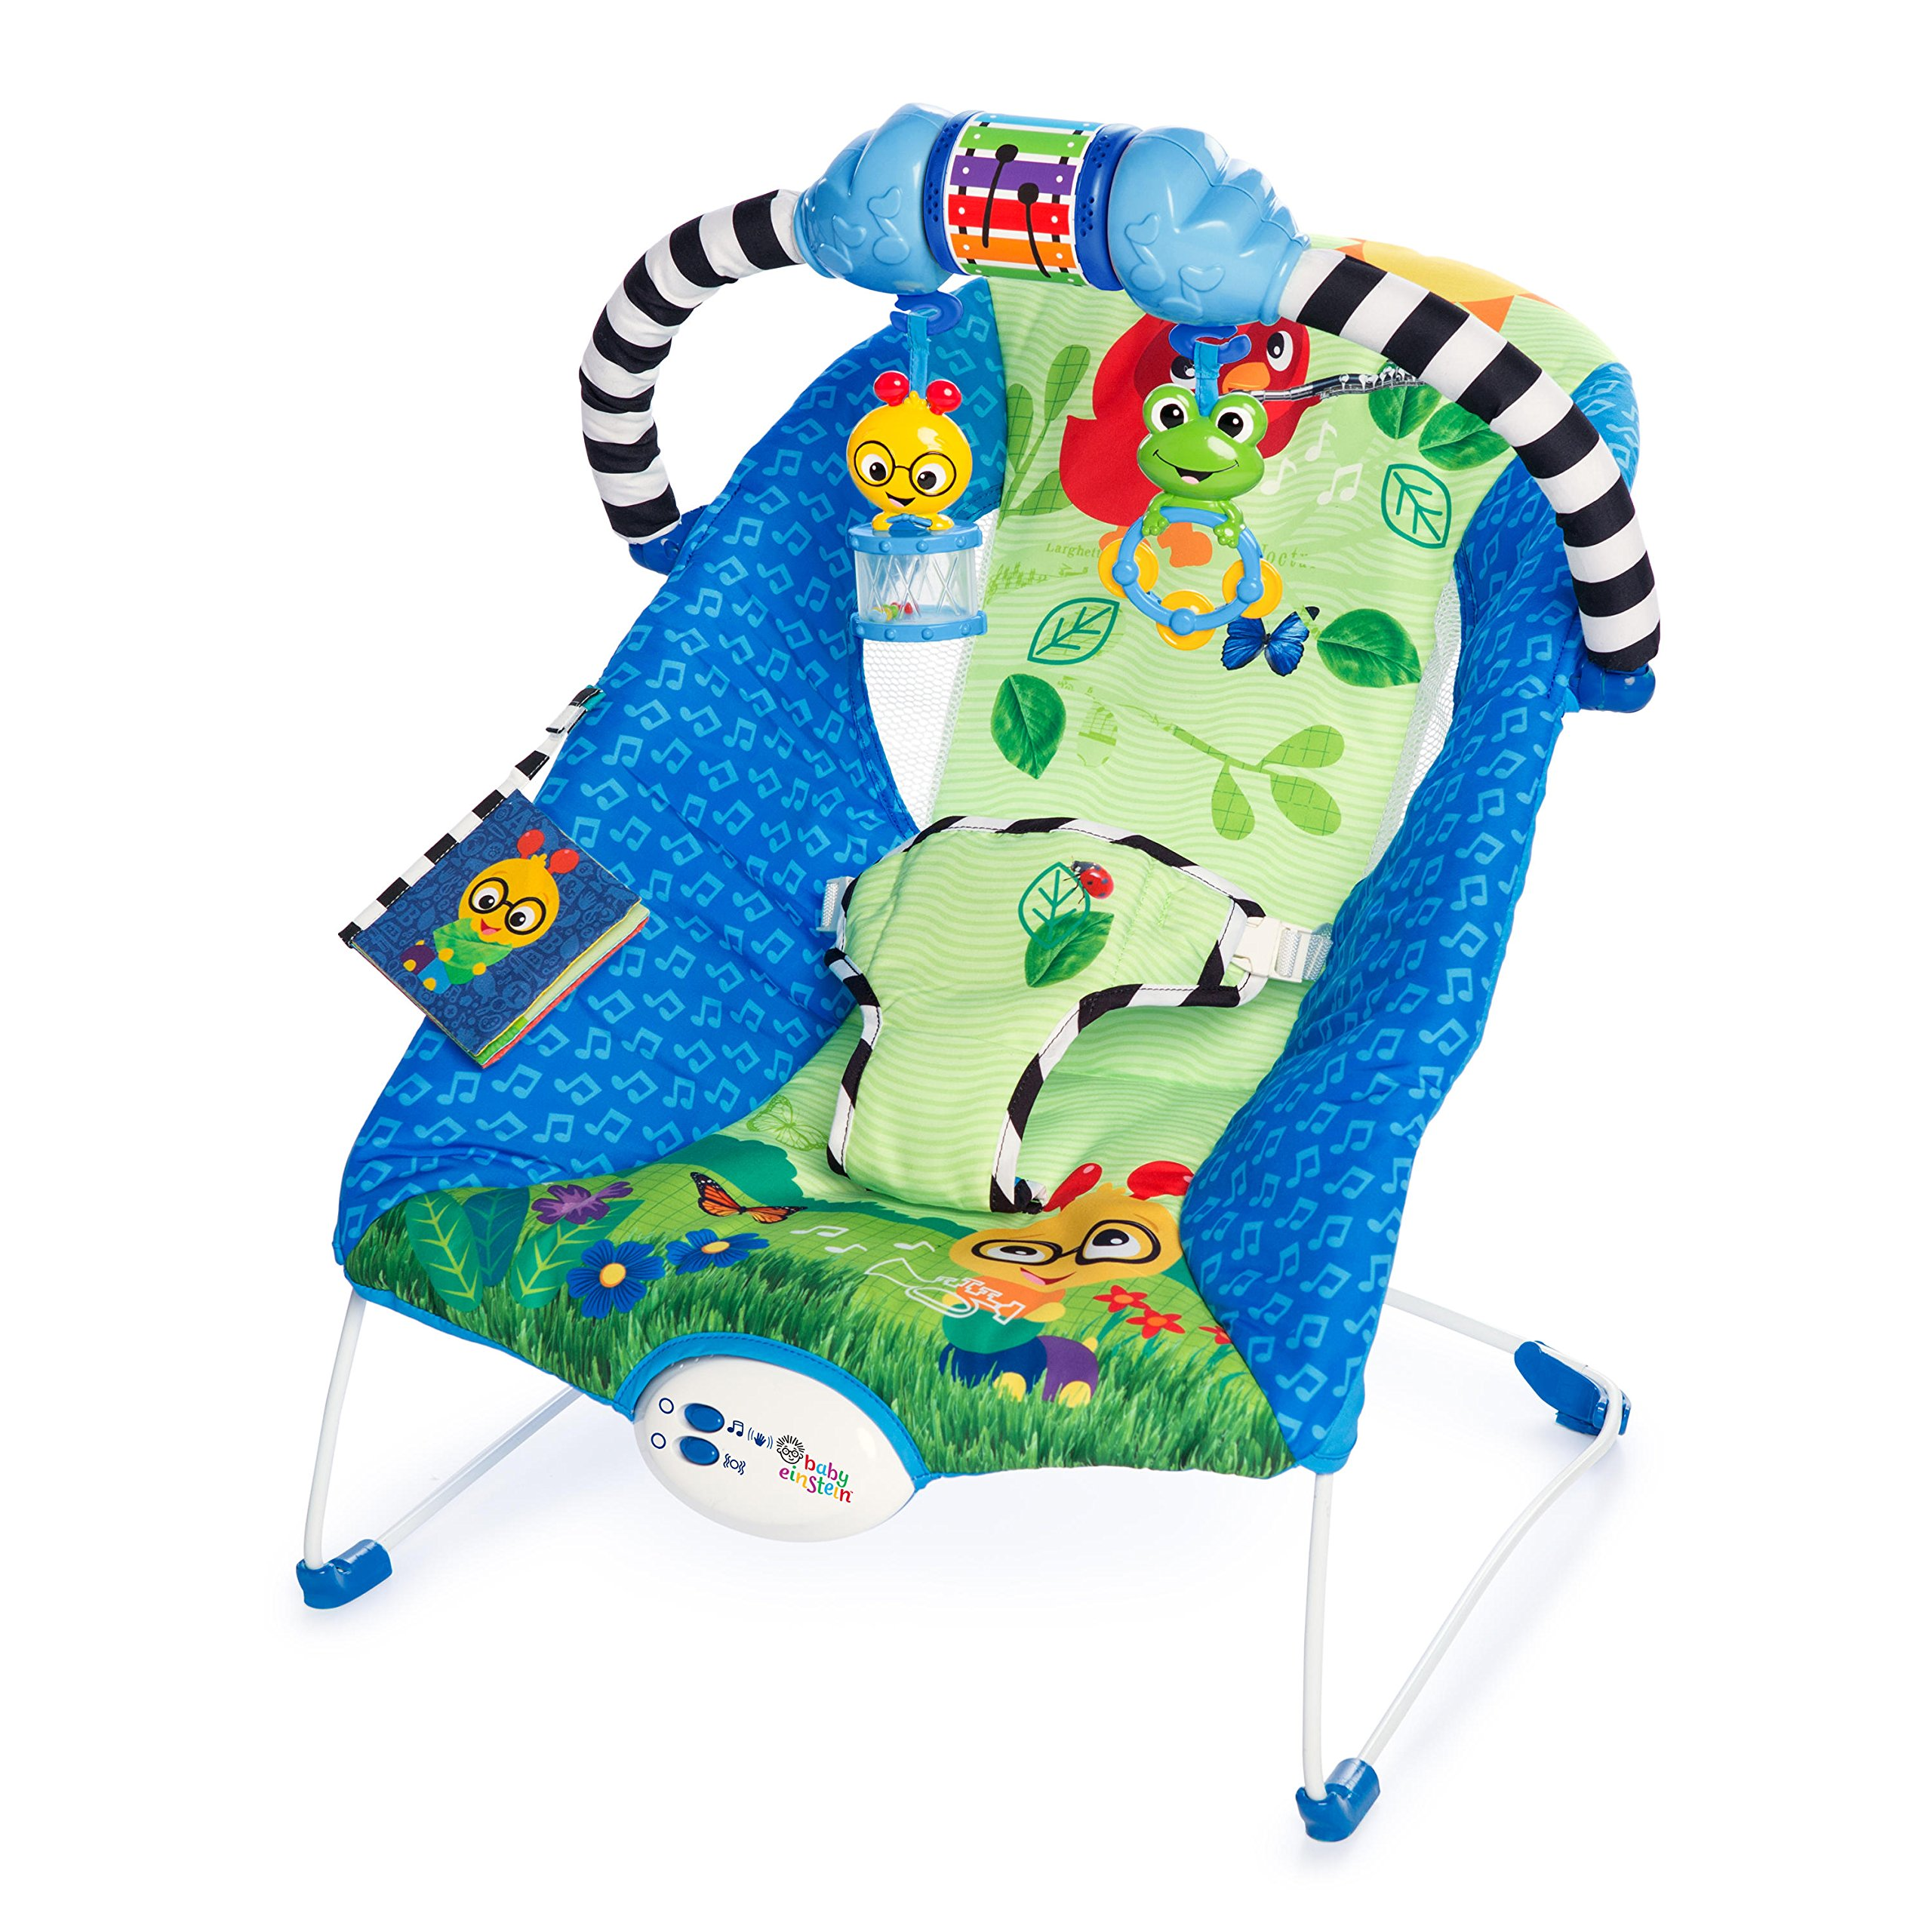 61d8307e76a Get Quotations · Baby Einstein Bouncer